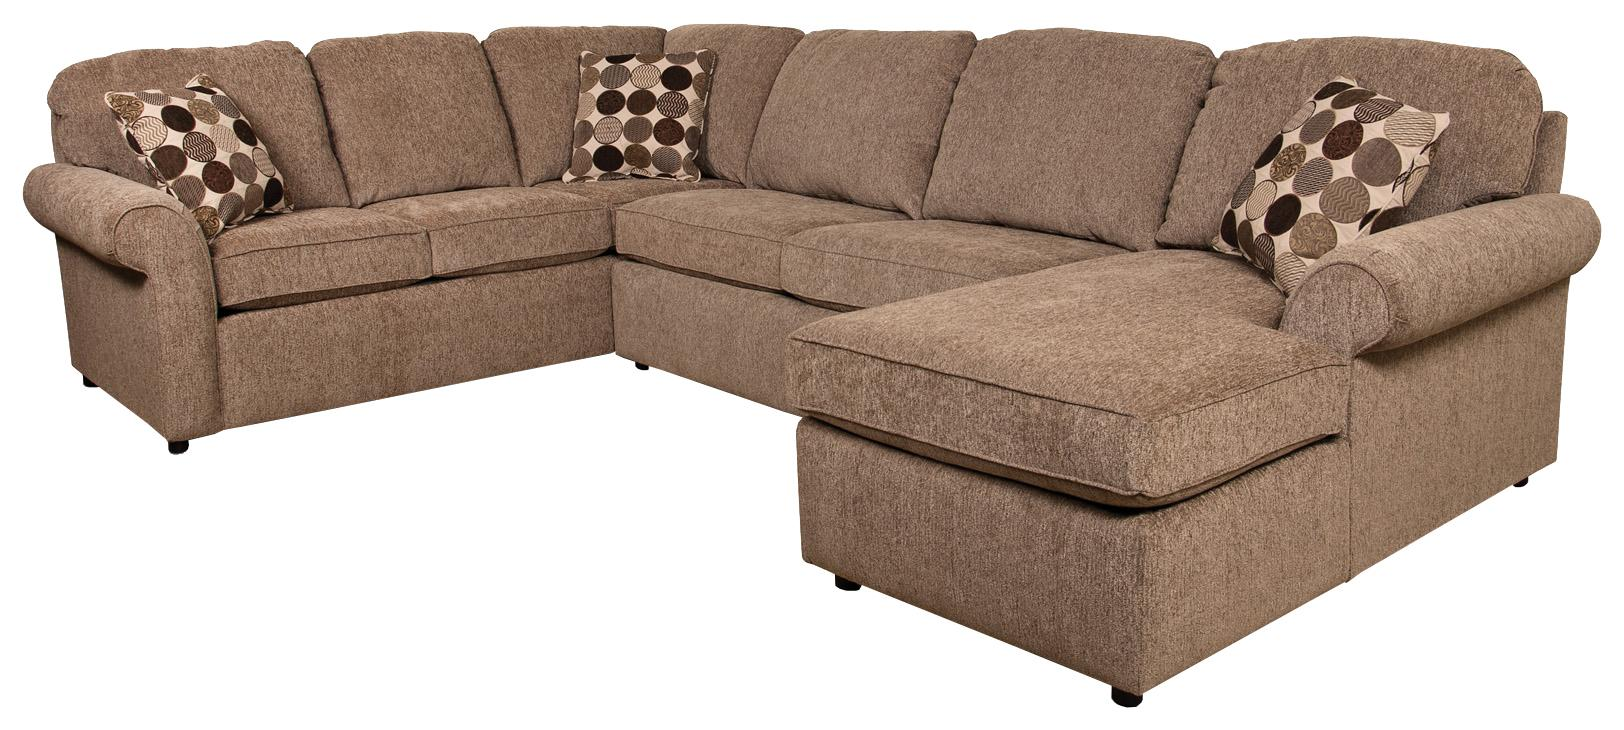 England malibu 5 6 seat right side chaise sectional sofa for Sofa 6 seater